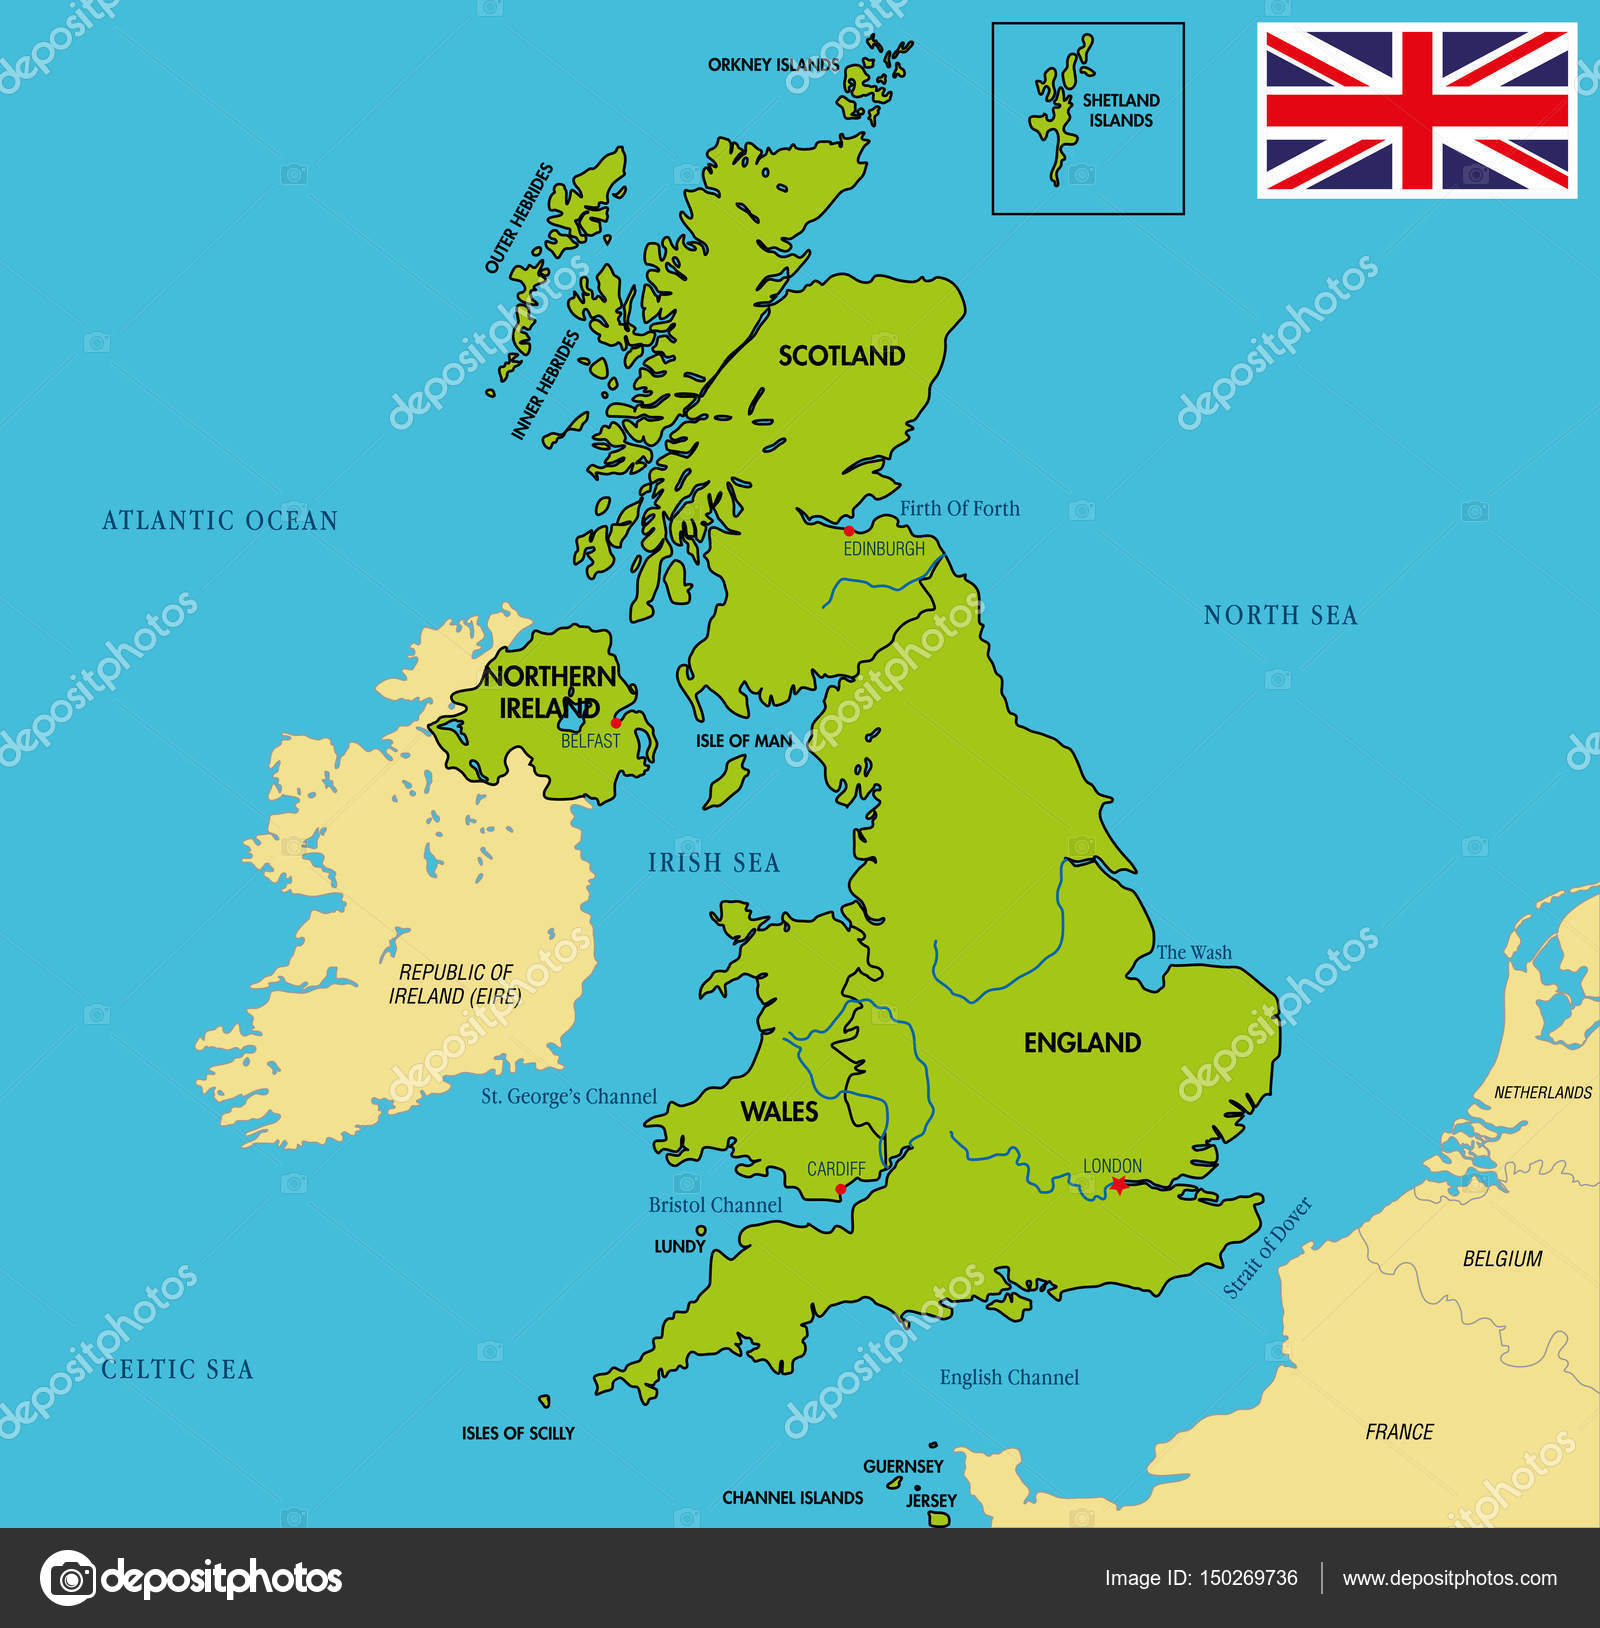 Political map of england with regions and their capitals archivo vector highly detailed political map of england with regions and their capitals all elements are separated in editable layers clearly labeled gumiabroncs Image collections